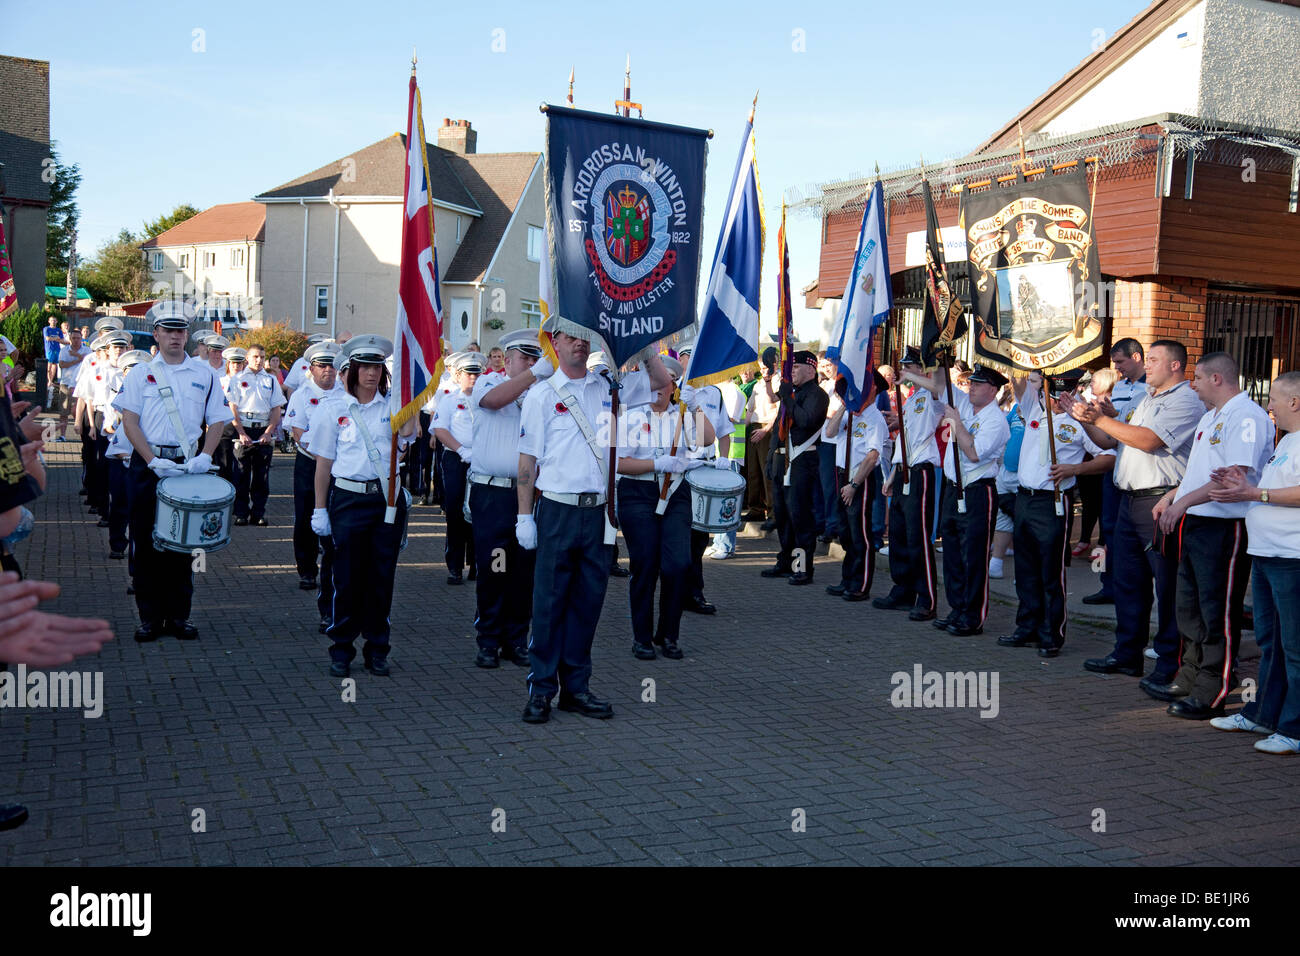 Ardrossan Winton Flute Band (Loyalist/Protestant) stand at the end of their parade in Kilwinning, Ayrshire, Scotland - Stock Image